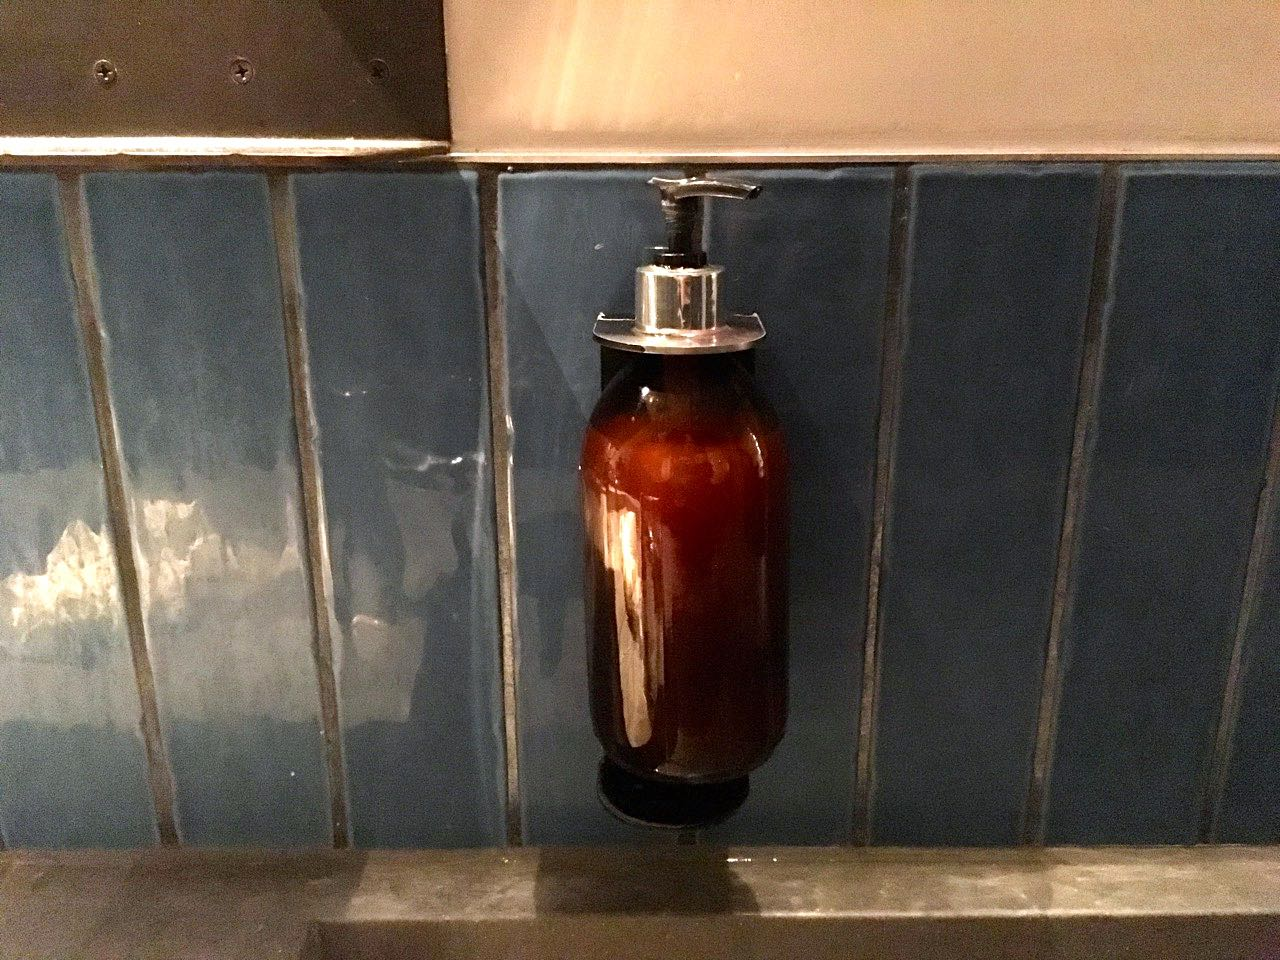 A closer look at the tiles and soap dispensers